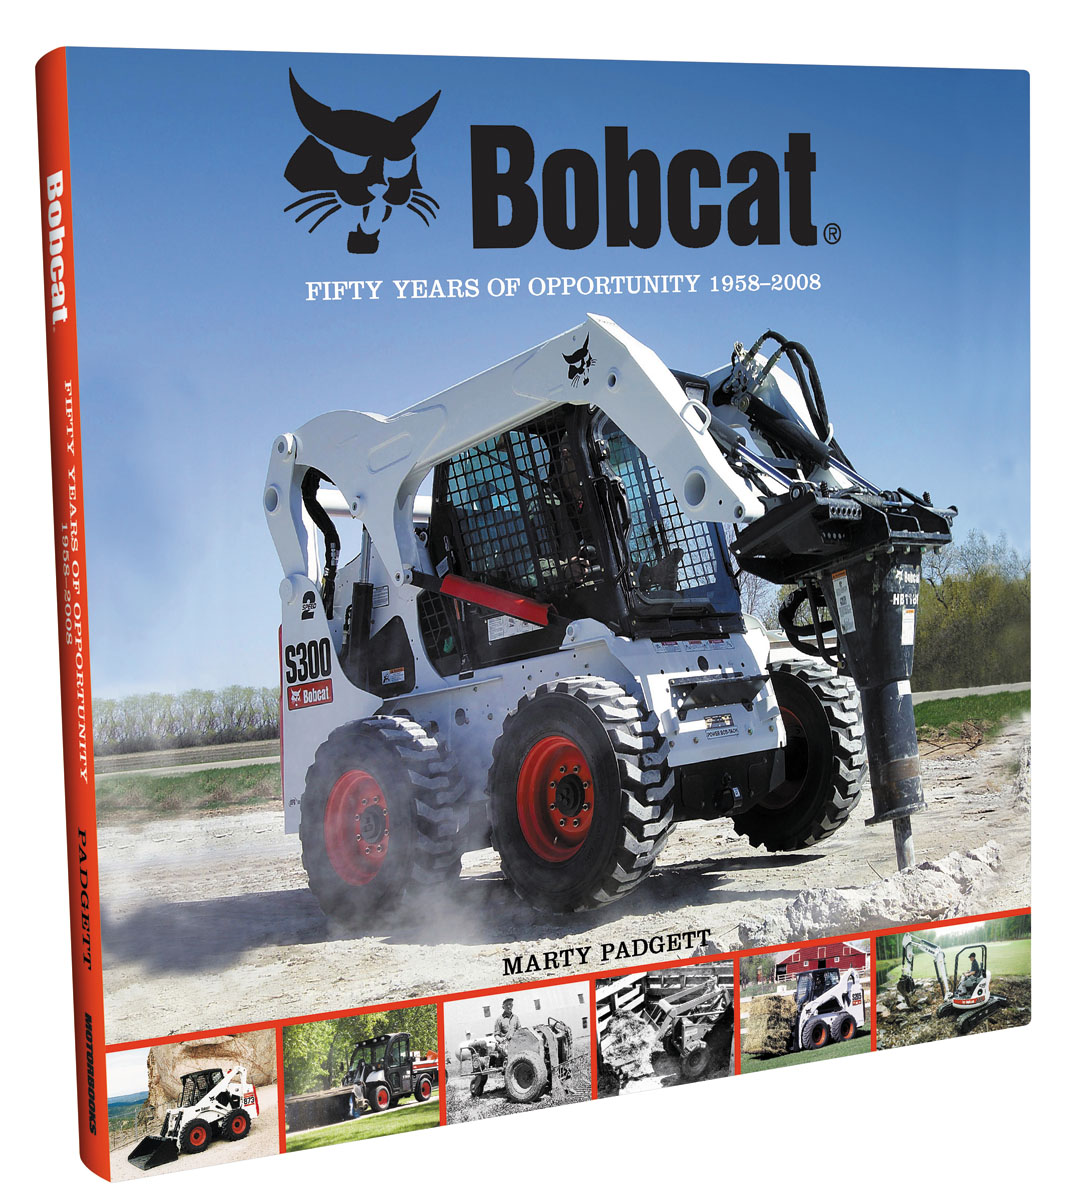 designing a new breed of skid steer loaders bobcat blog bobcat 50 years of opportunity 1958 2008